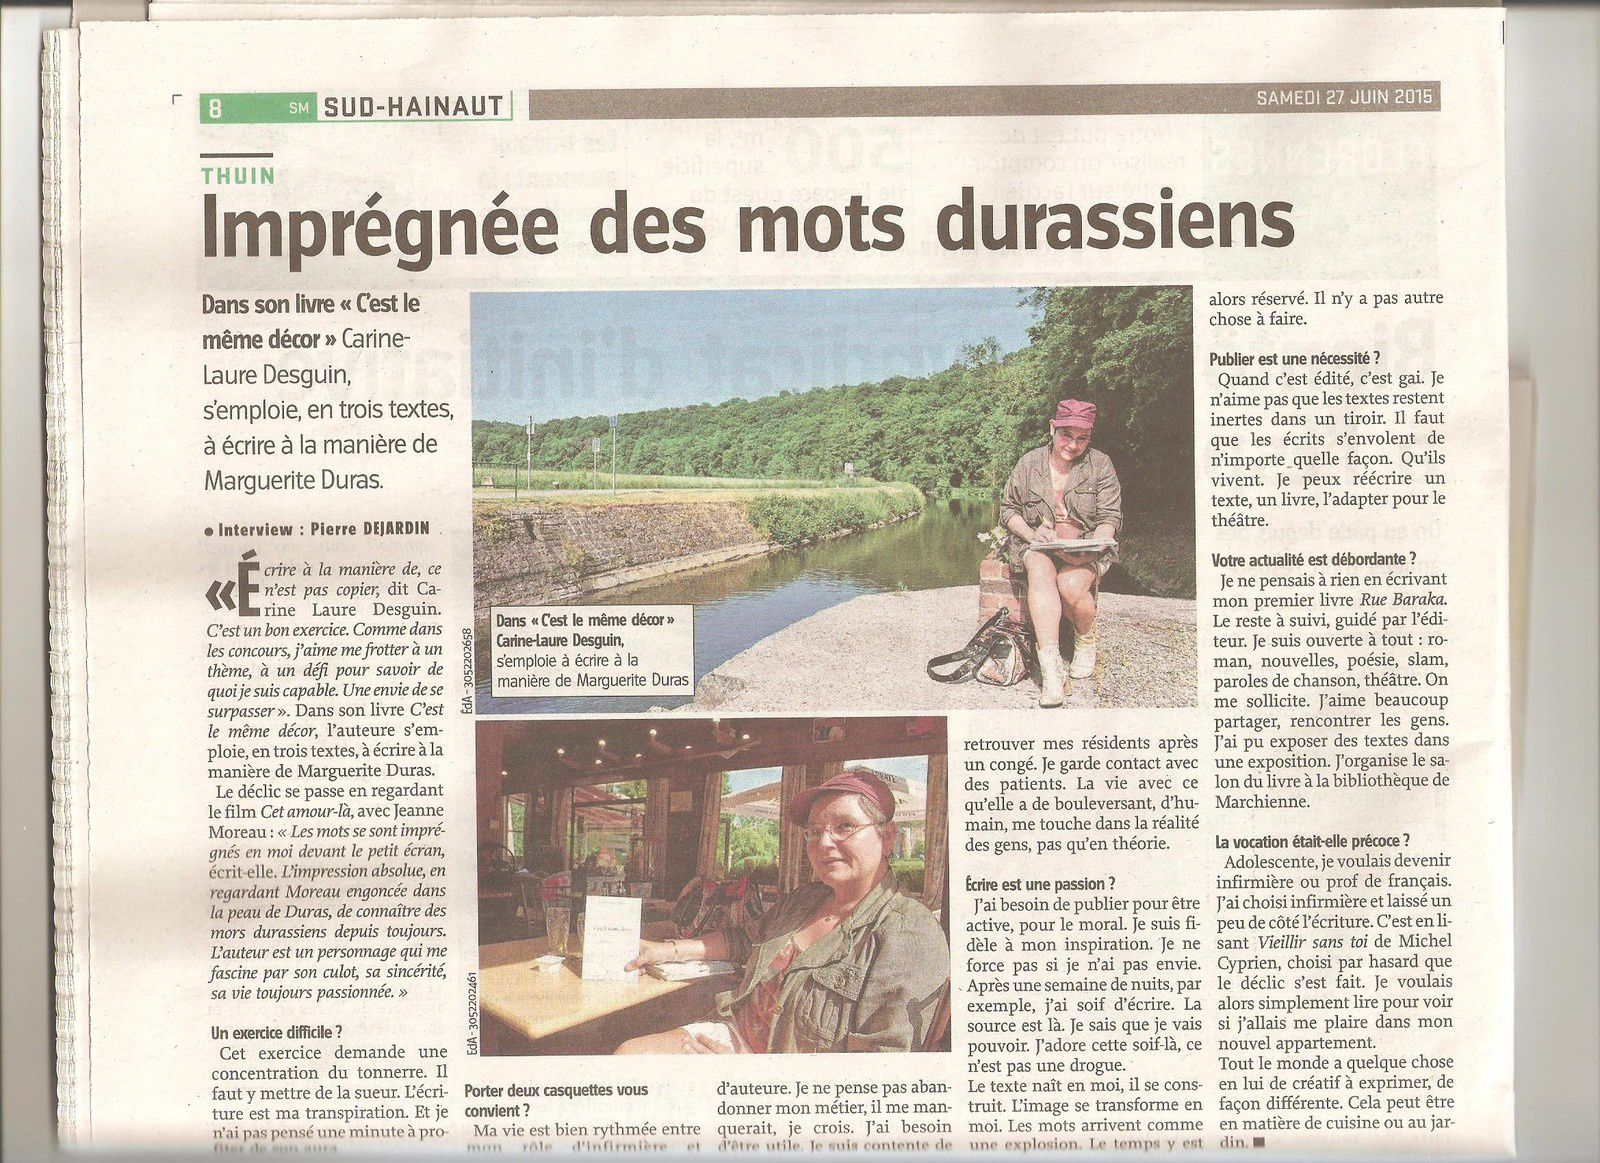 ob_5c9d60_article-presse-juin-2015.jpeg